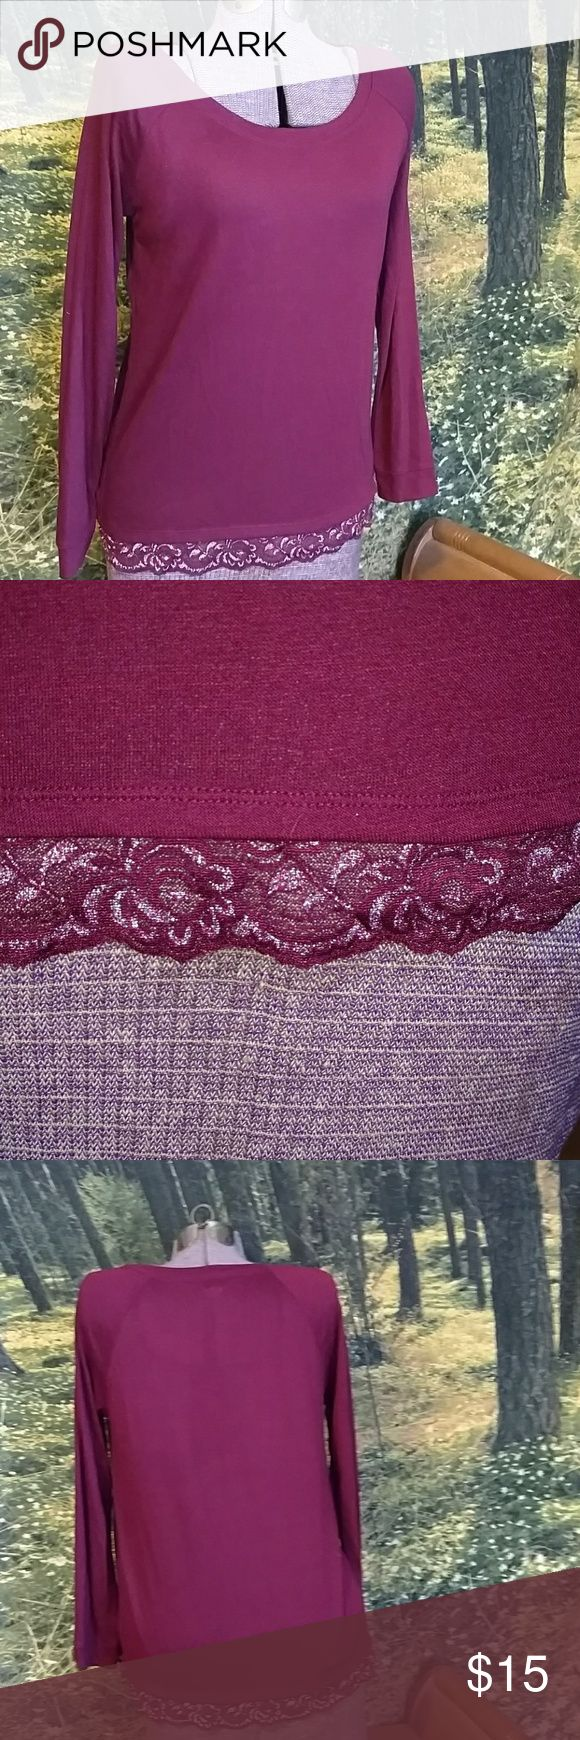 Fitted long sleeve T-shirt Magenta Light weight, soft, lace trim detail along waist. aerie Tops Tees - Long Sleeve